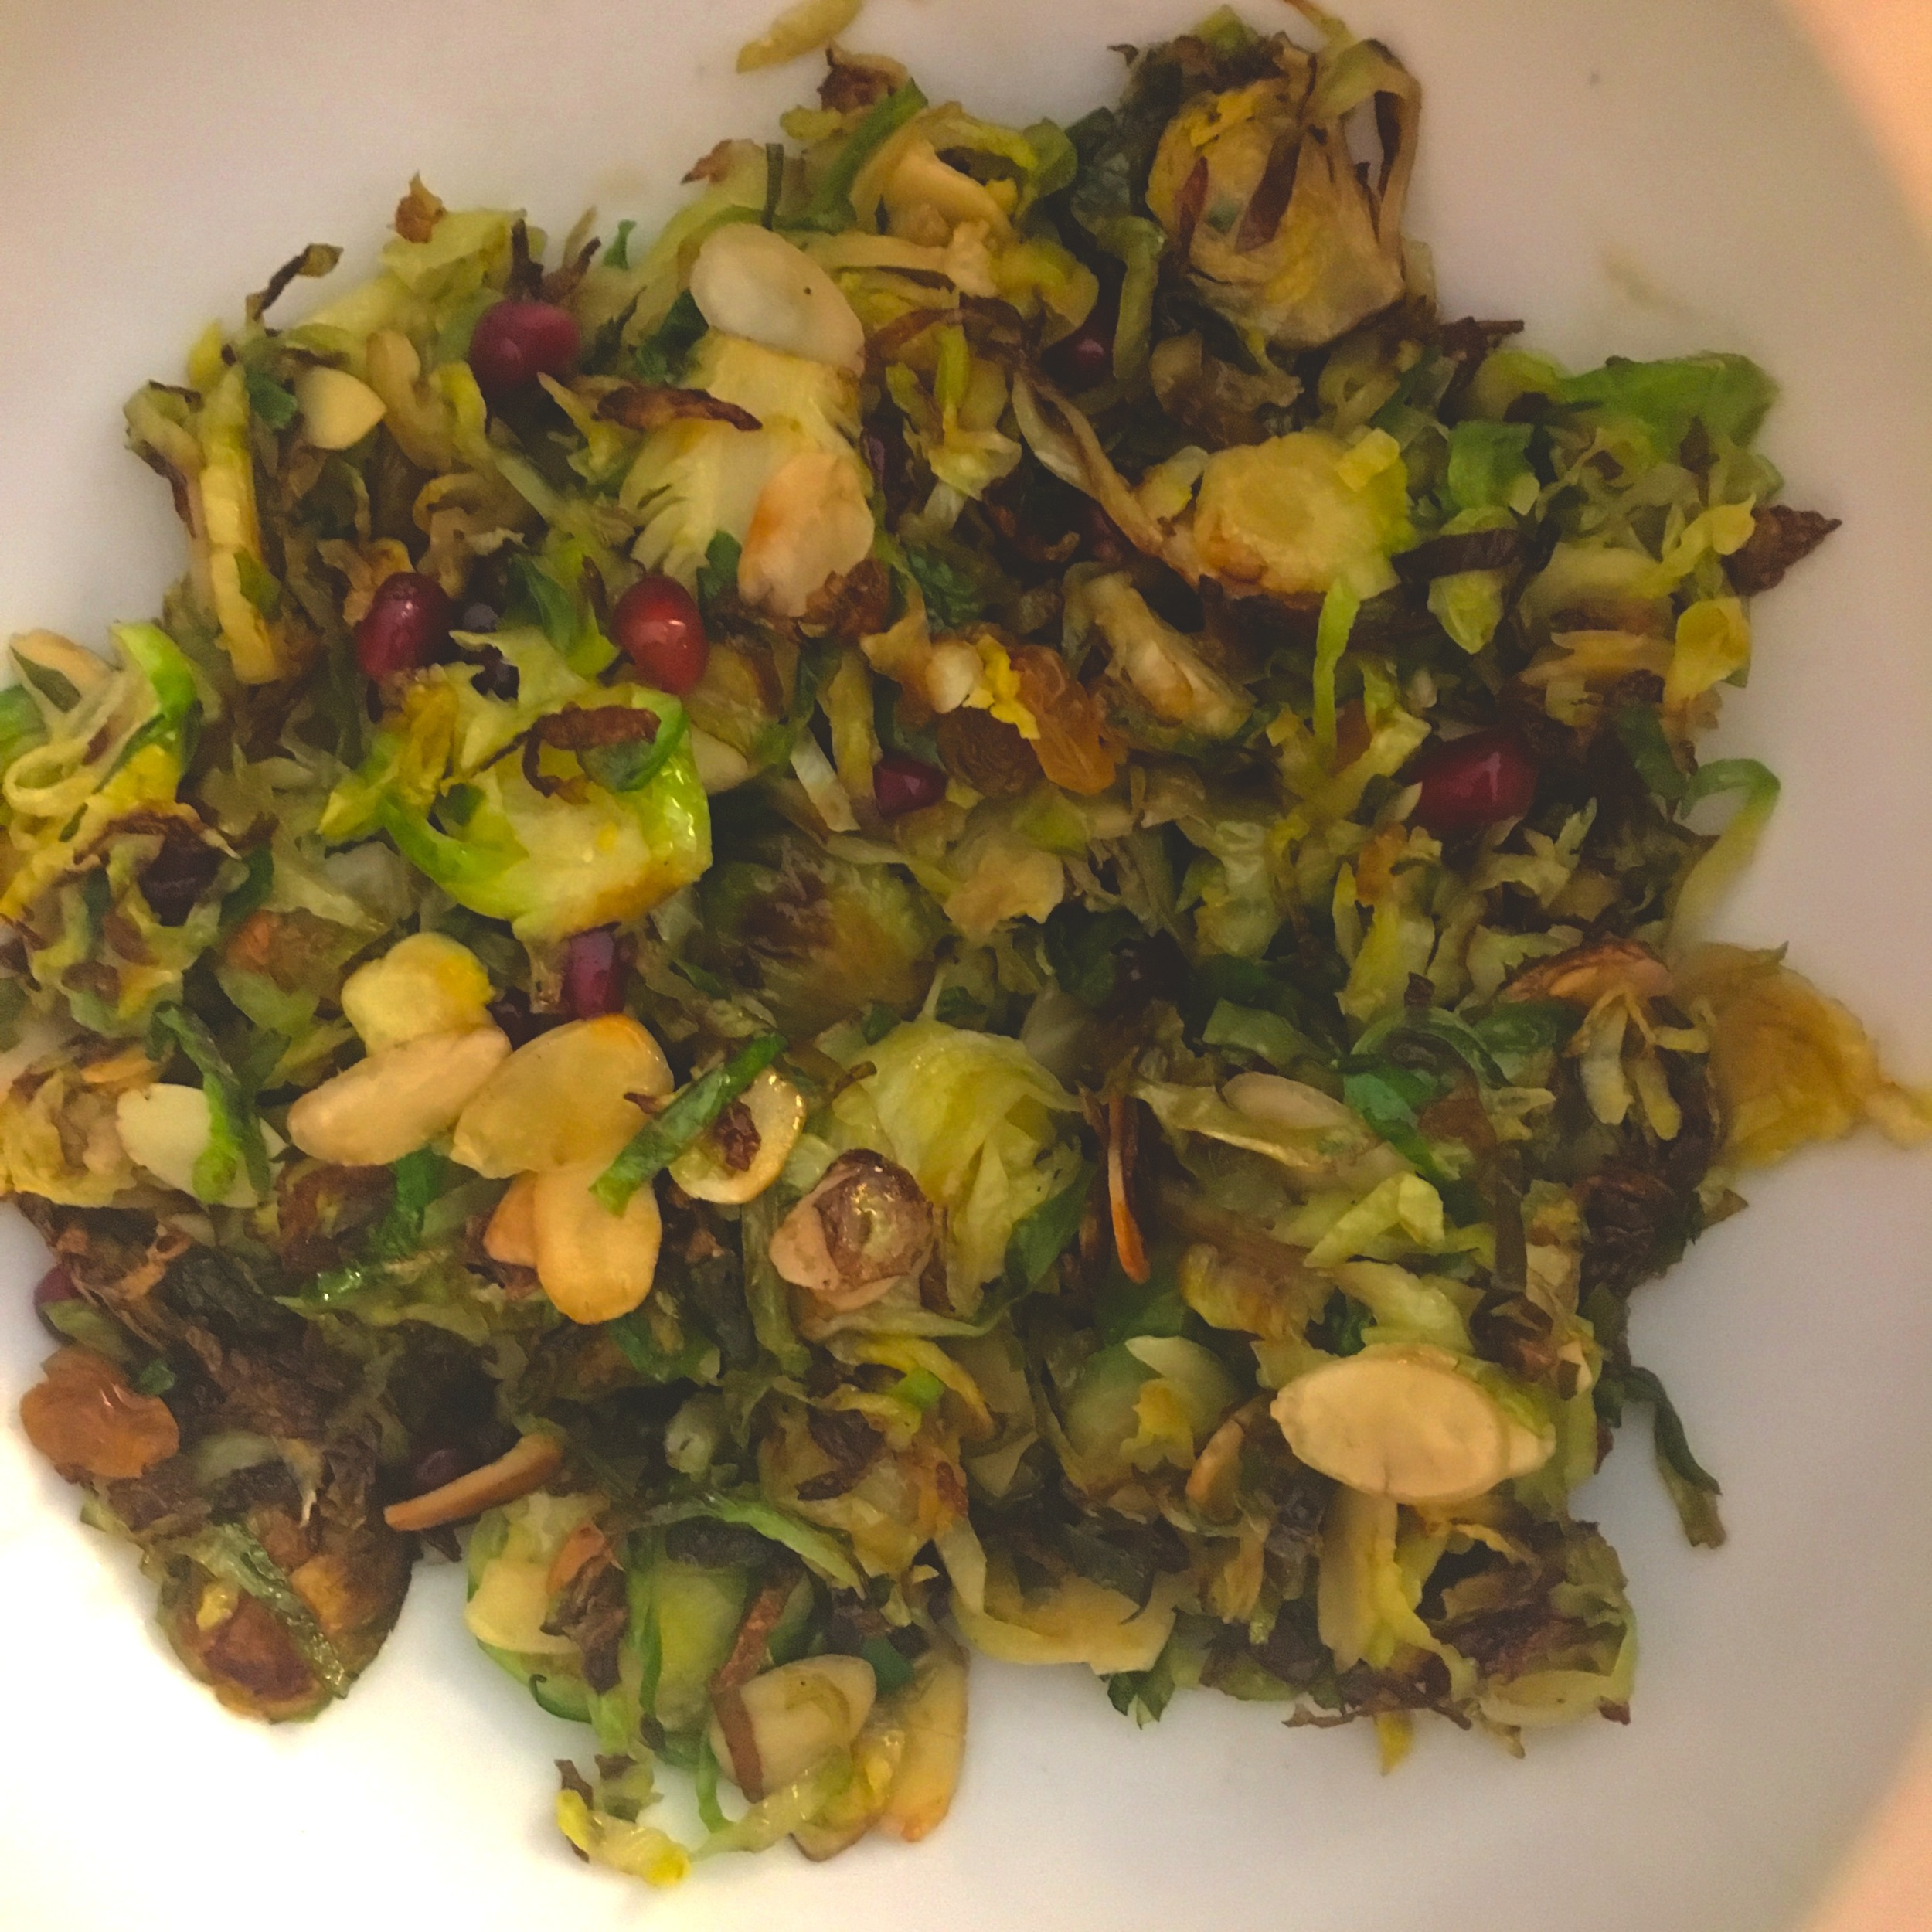 Shaved brussels sprouts, shown here with sliced almonds